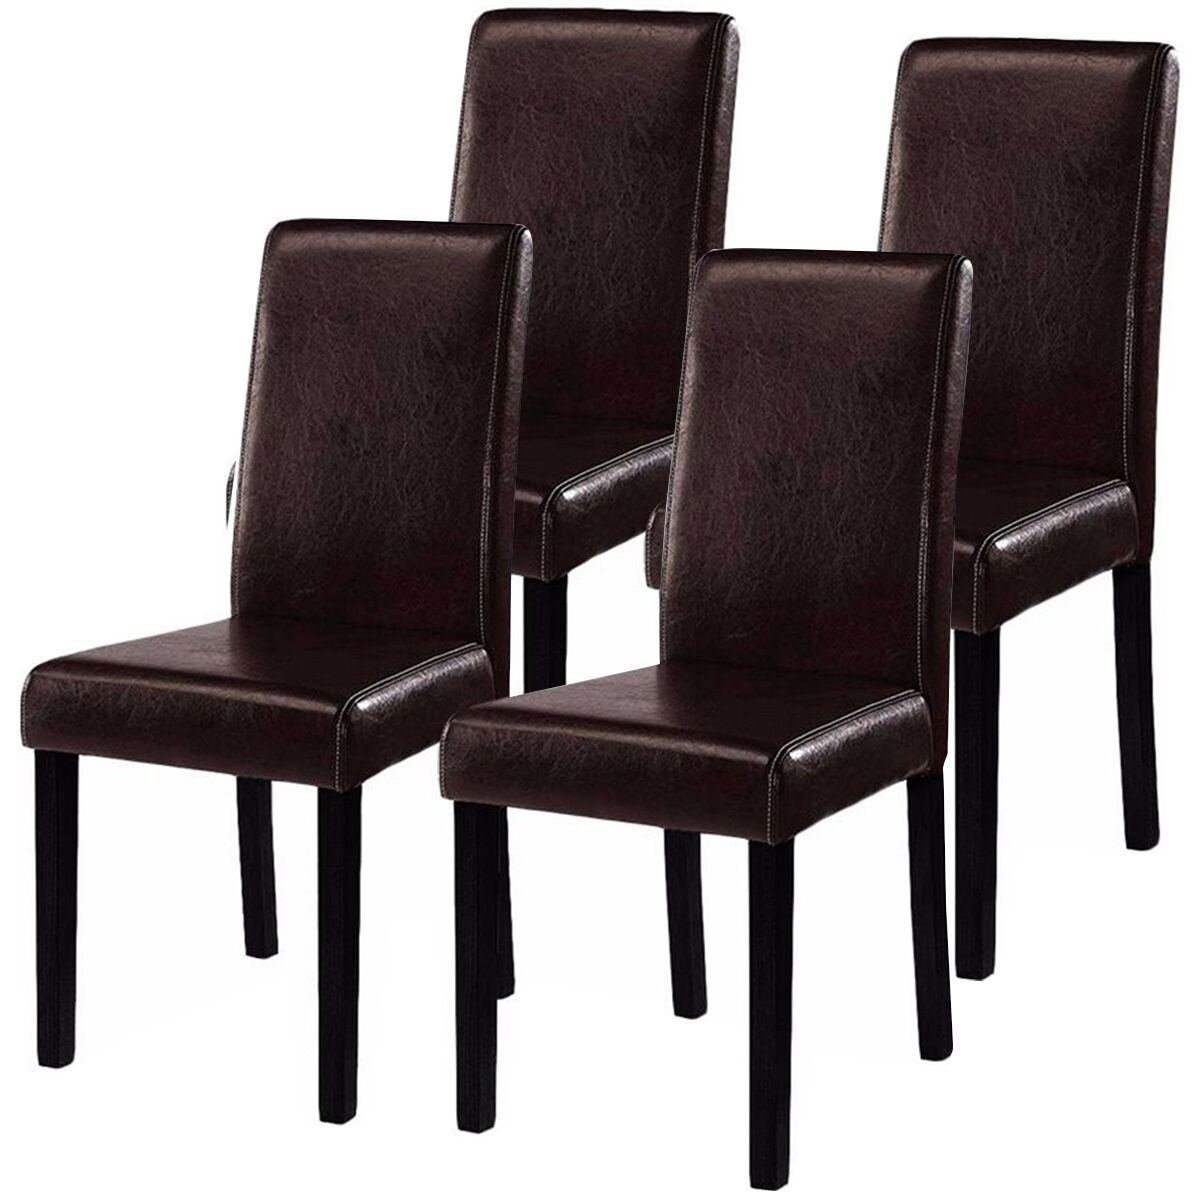 MasterPanel - Set of 4 Elegant Design Leather Contemporary Dining Chairs Home Room #TP3254 by MasterPanel